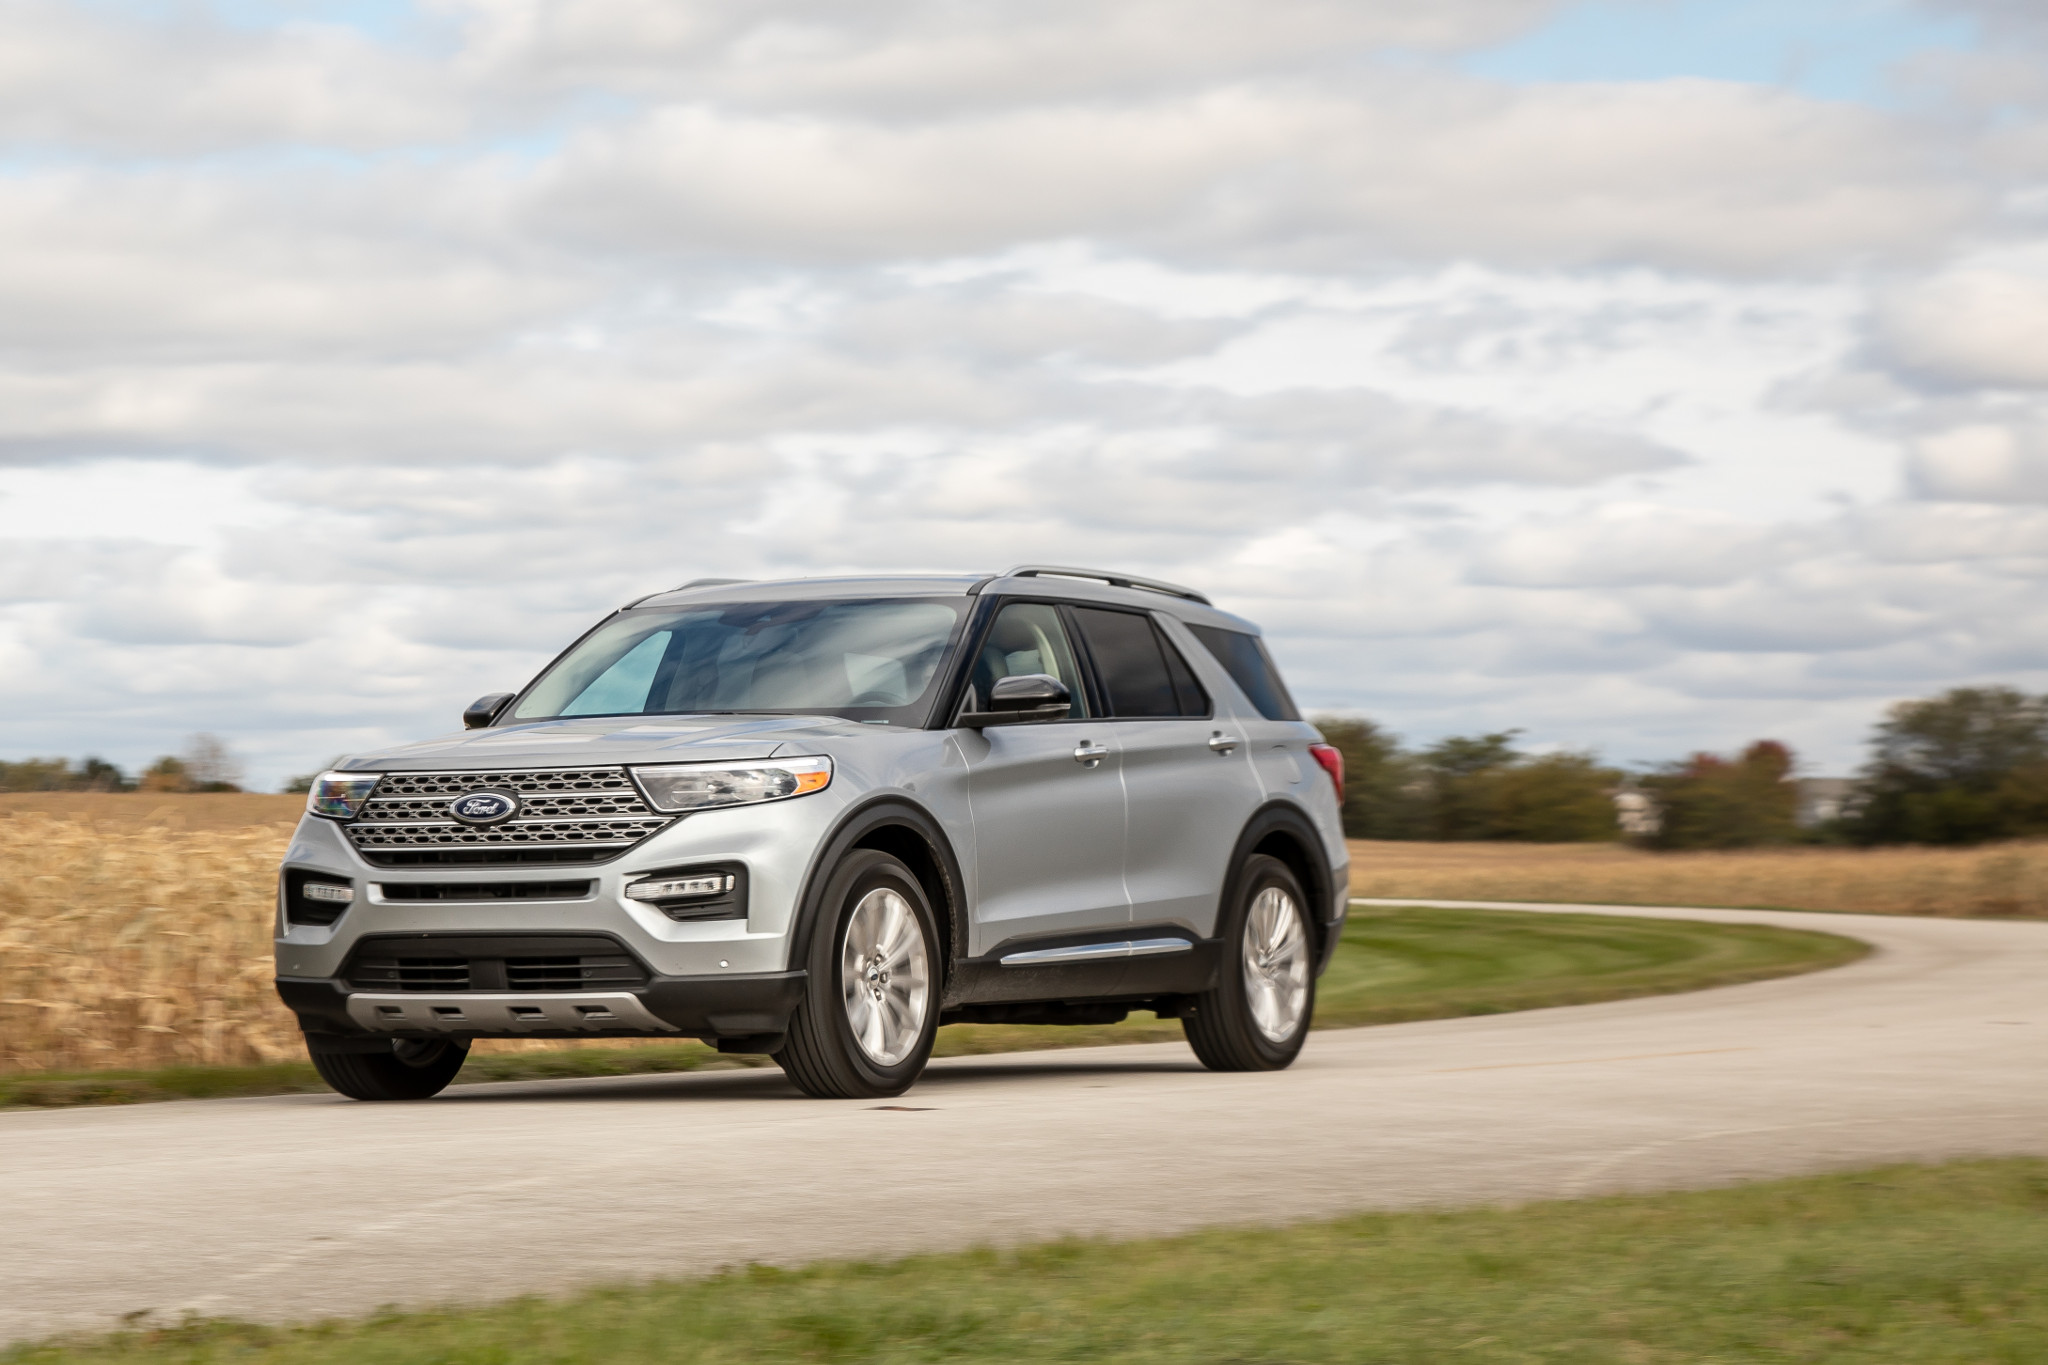 2020 Ford Explorer Review: Looking Rearward